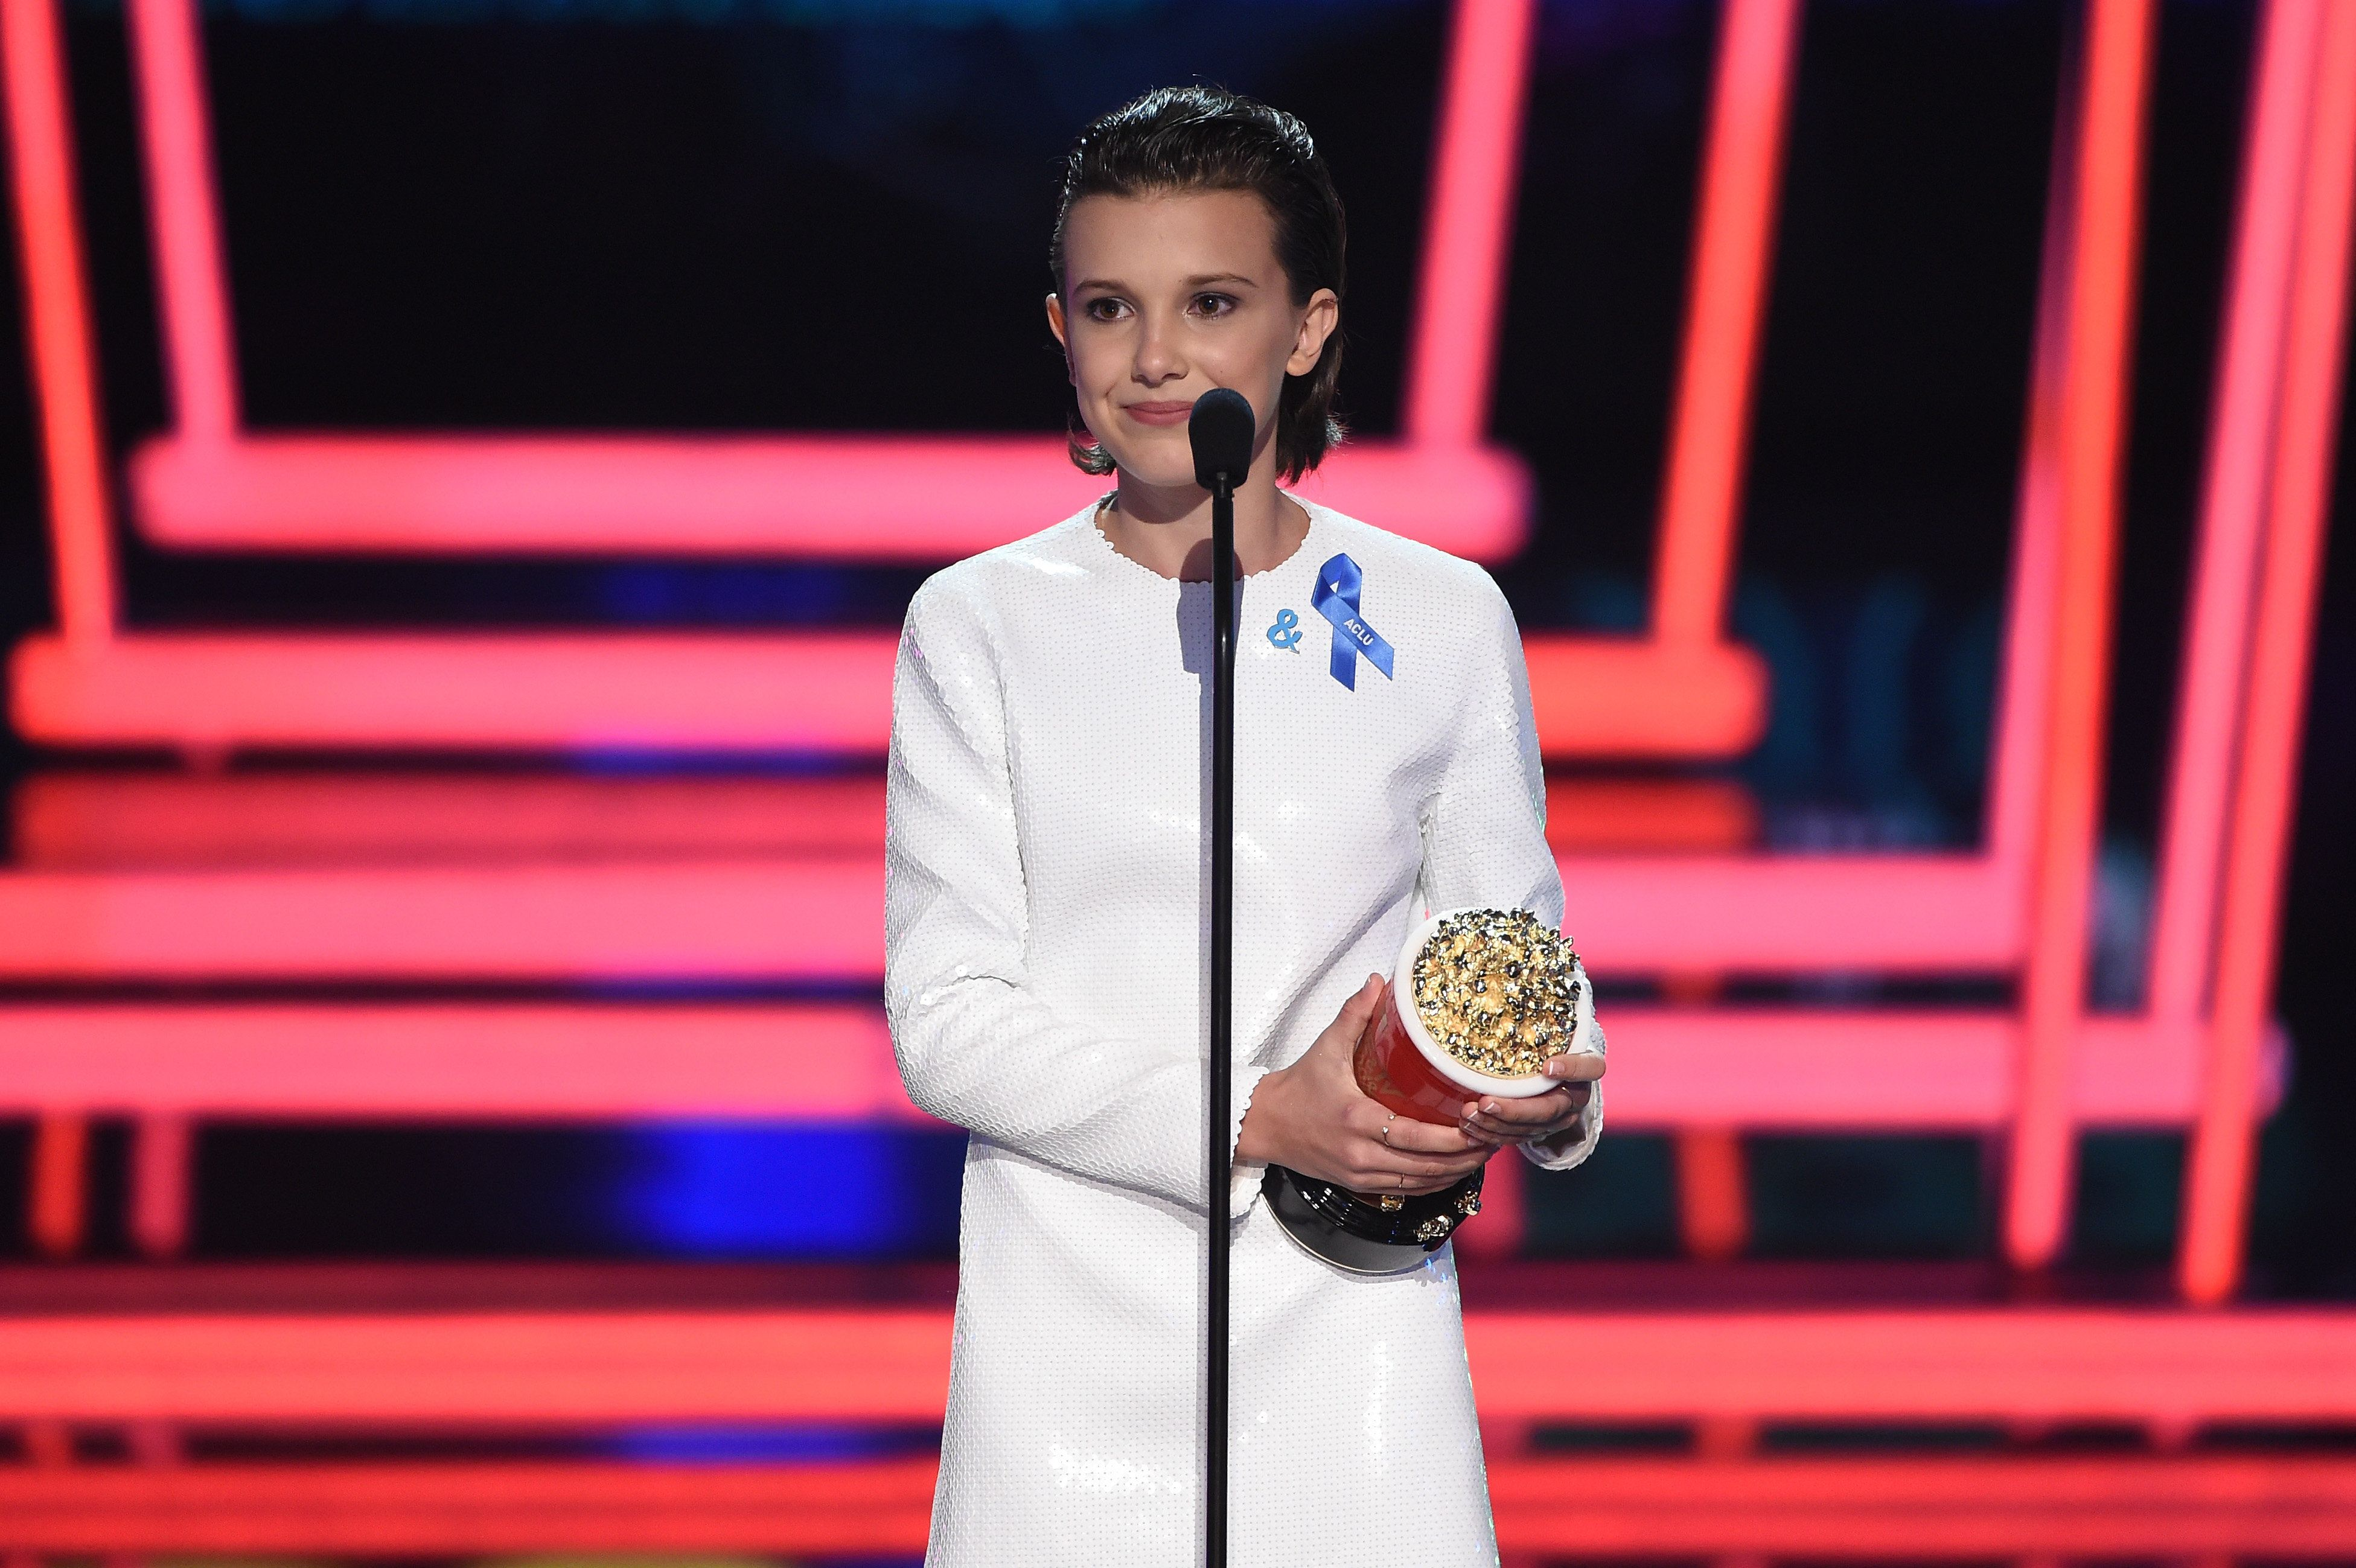 LOS ANGELES, CA - MAY 07:  Actor Millie Bobby Brown accepts Best Actor in a Show for 'Stranger Things' onstage during the 2017 MTV Movie And TV Awards at The Shrine Auditorium on May 7, 2017 in Los Angeles, California.  (Photo by Kevin Winter/Getty Images)